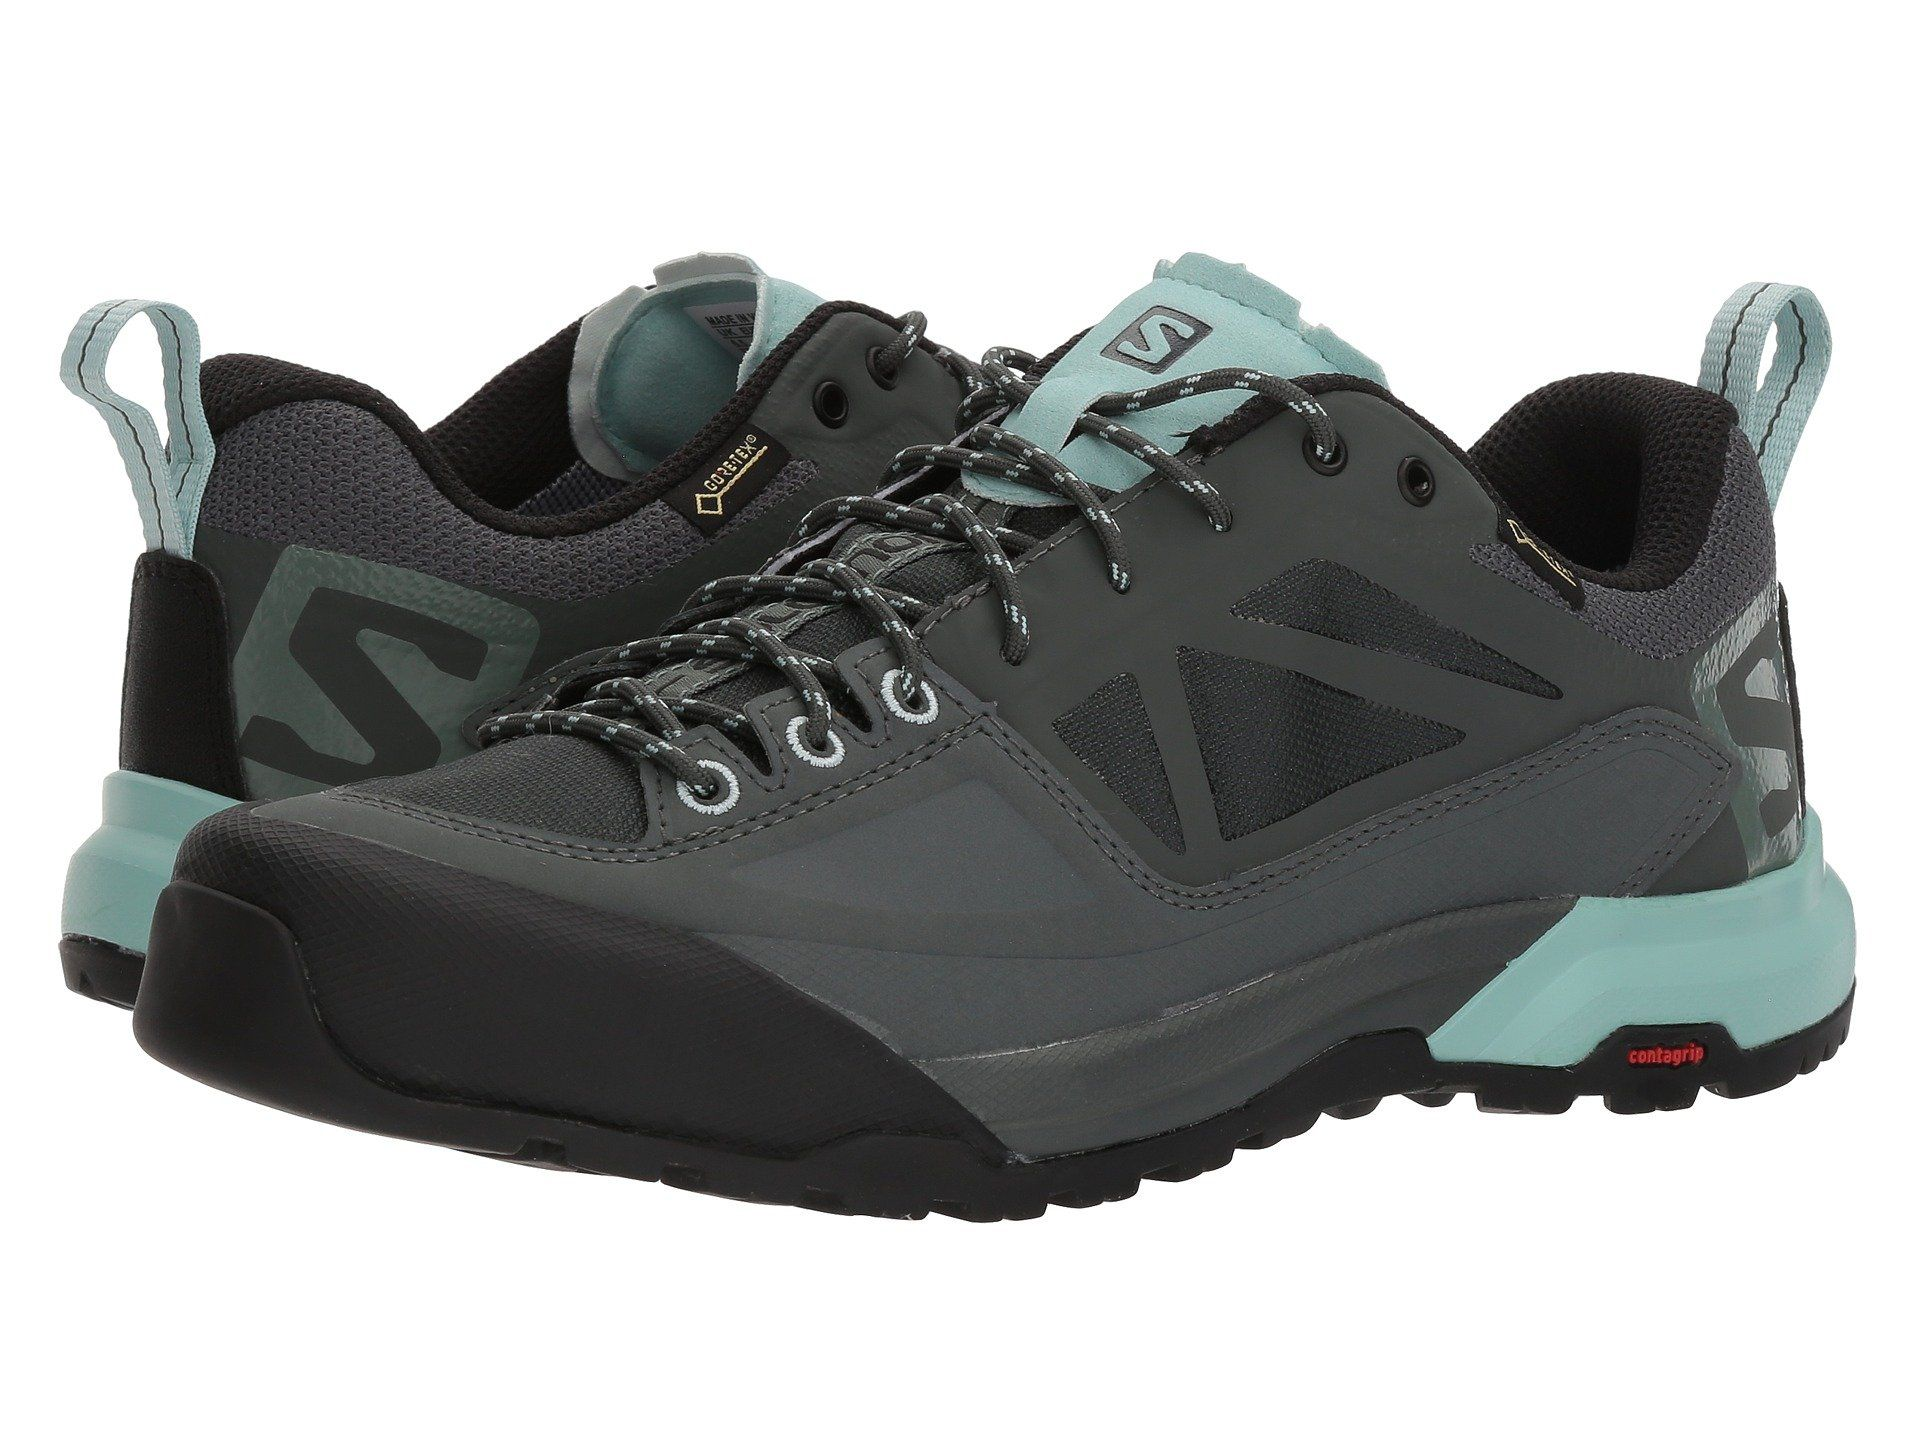 62132199f9db5 Salomon X Alp Spry GTX® | Shoes! | Shoes, On shoes, Sneakers